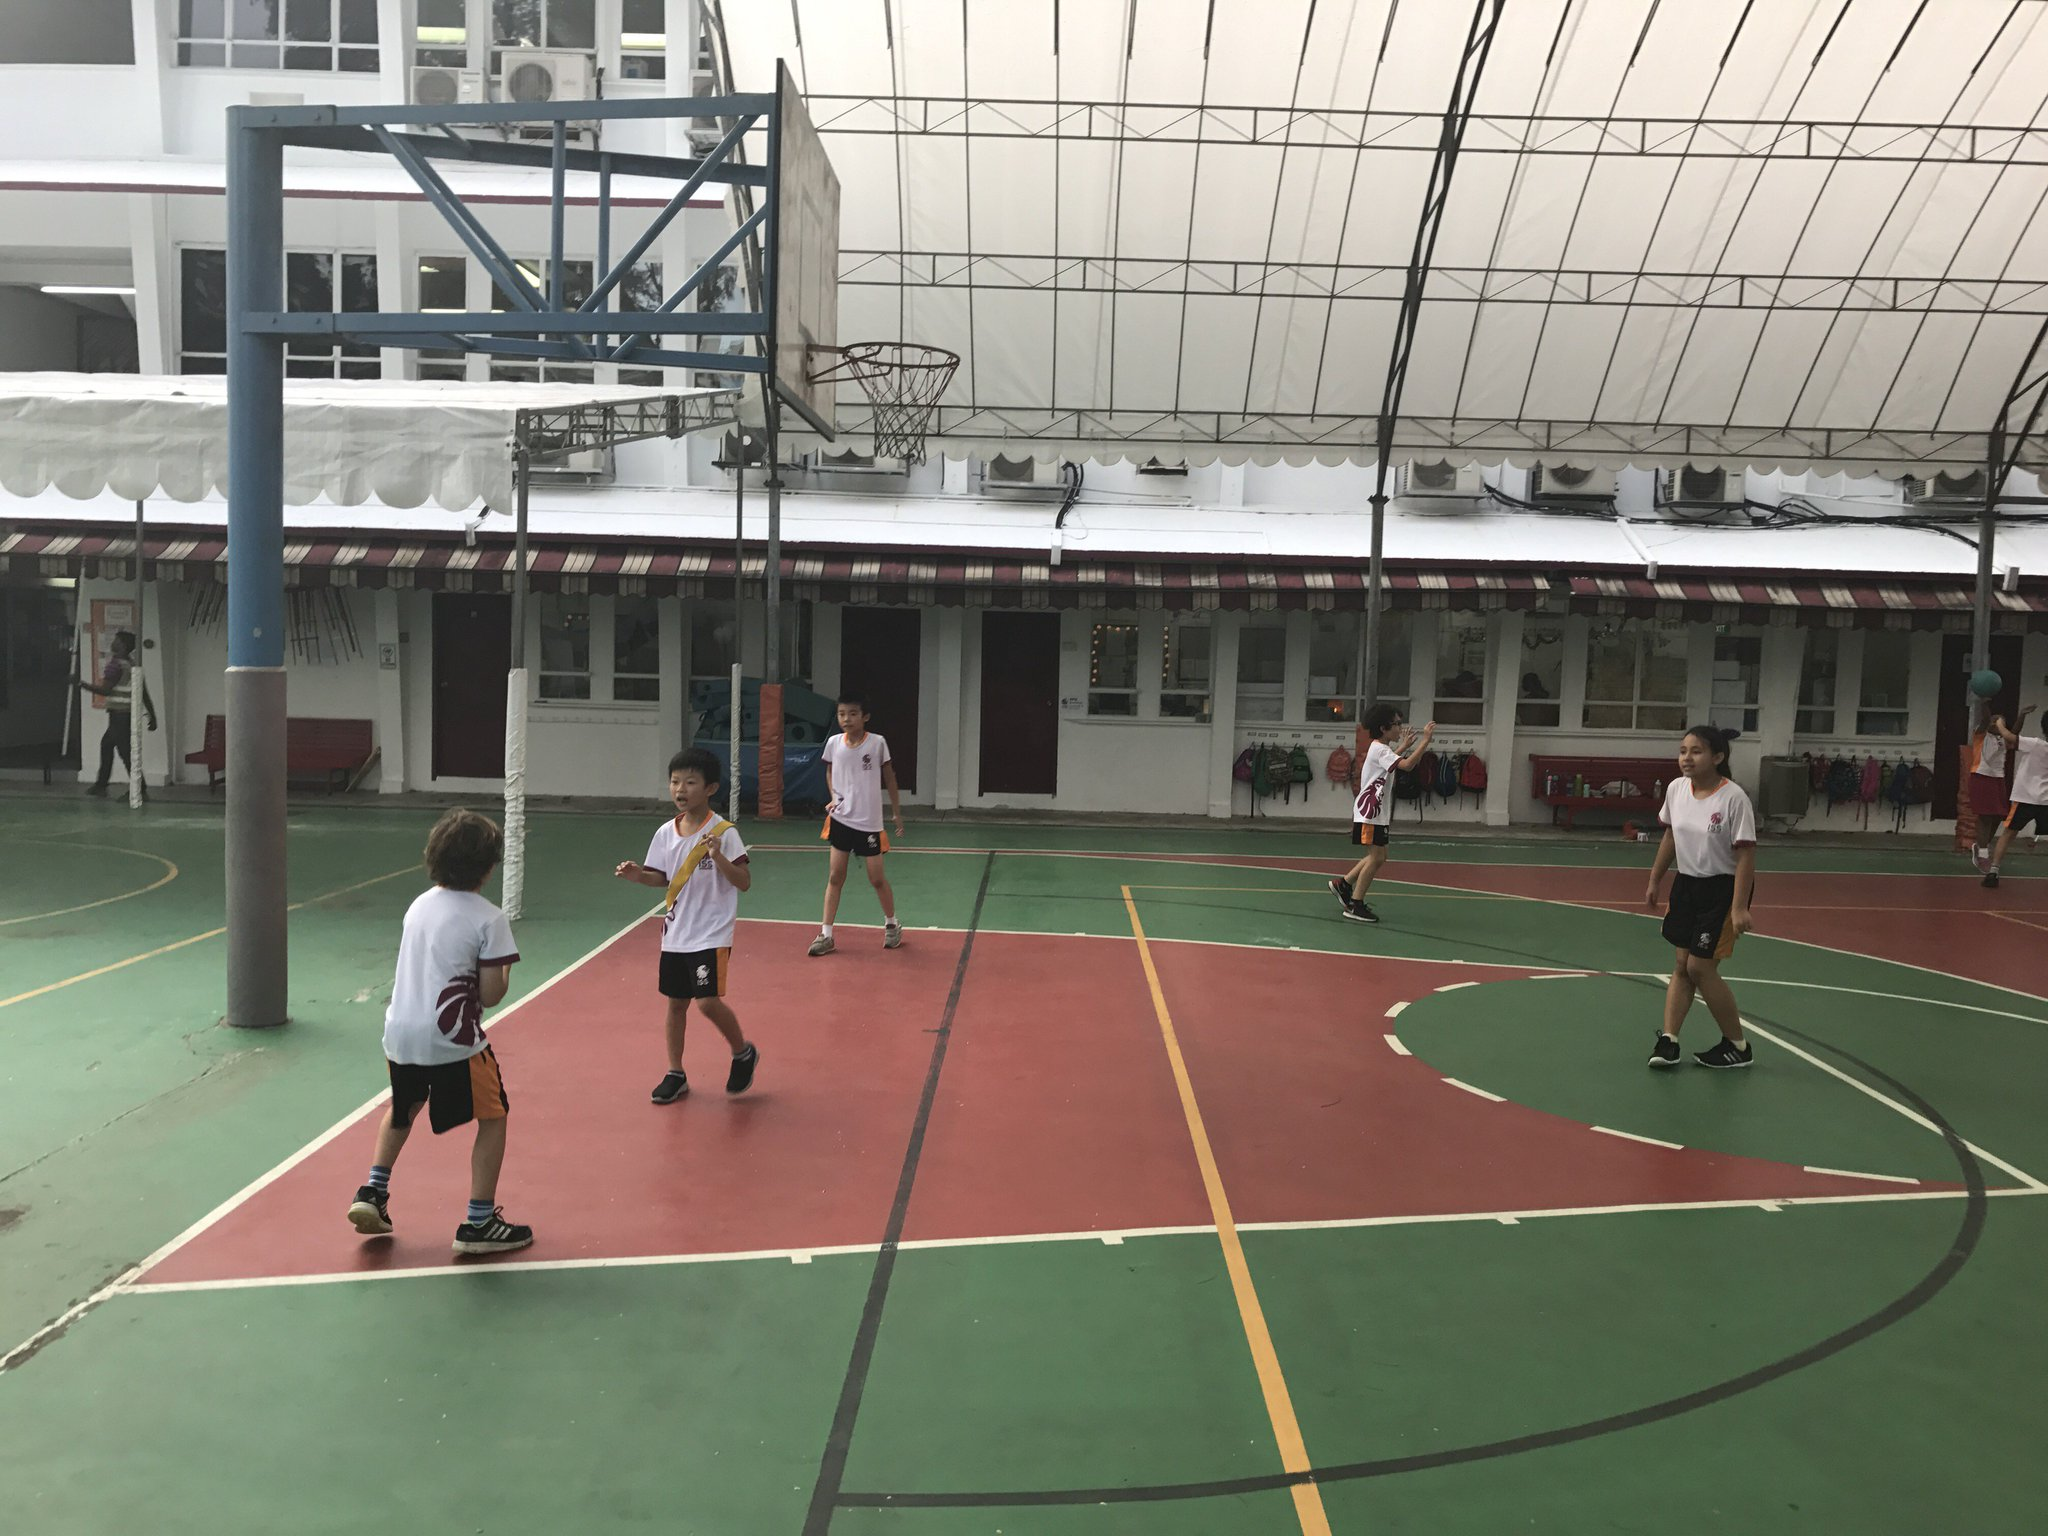 Starting our invasion games unit with a little 3v1 #isspride https://t.co/8bZmKjNUdw